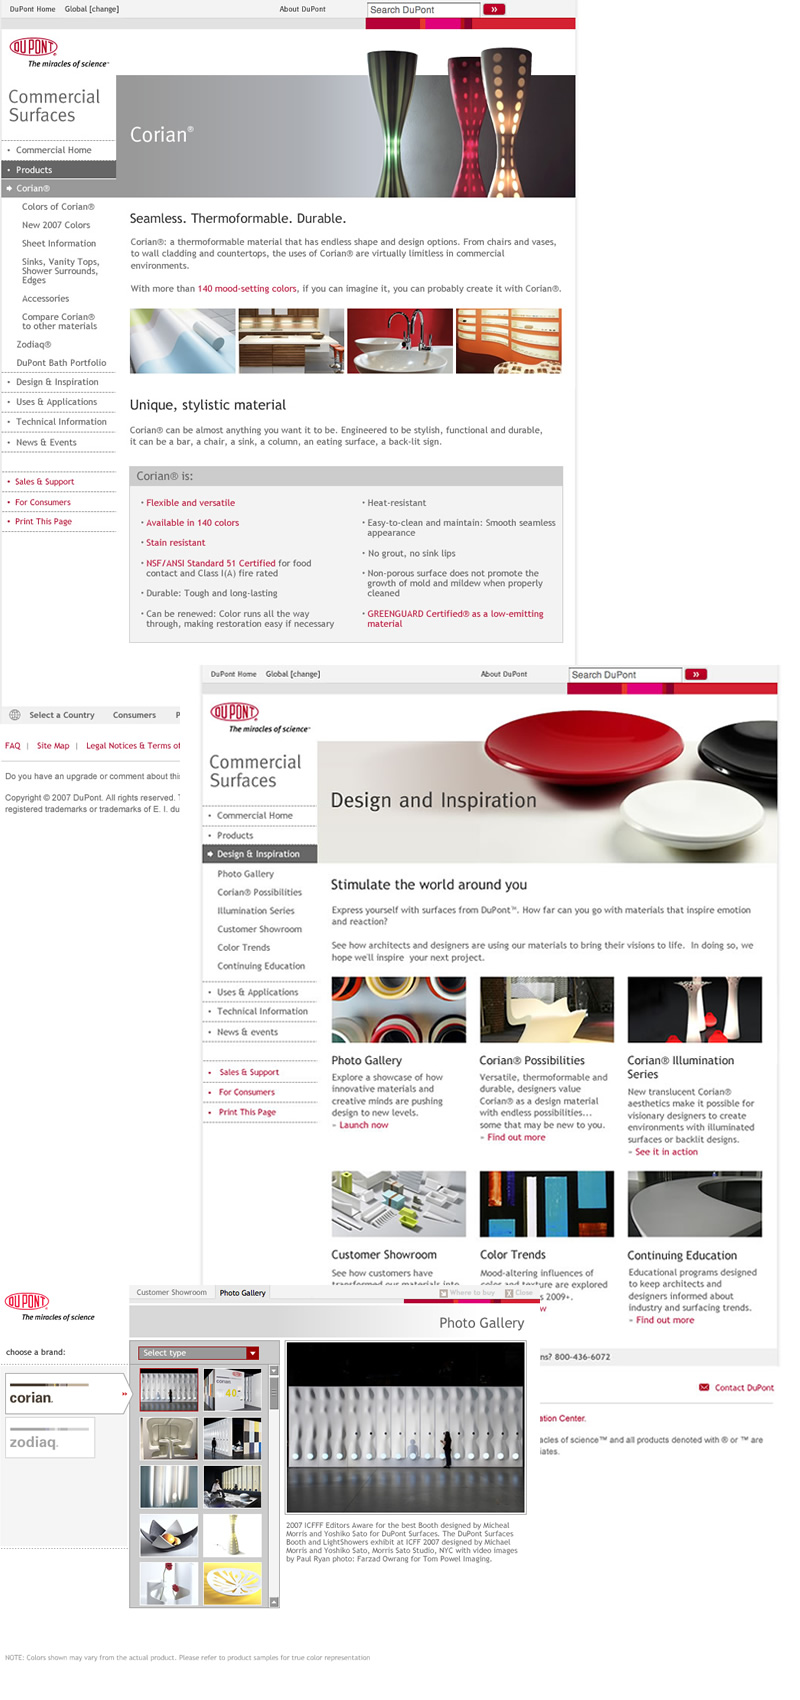 DuPont Commercial Surfaces - examples